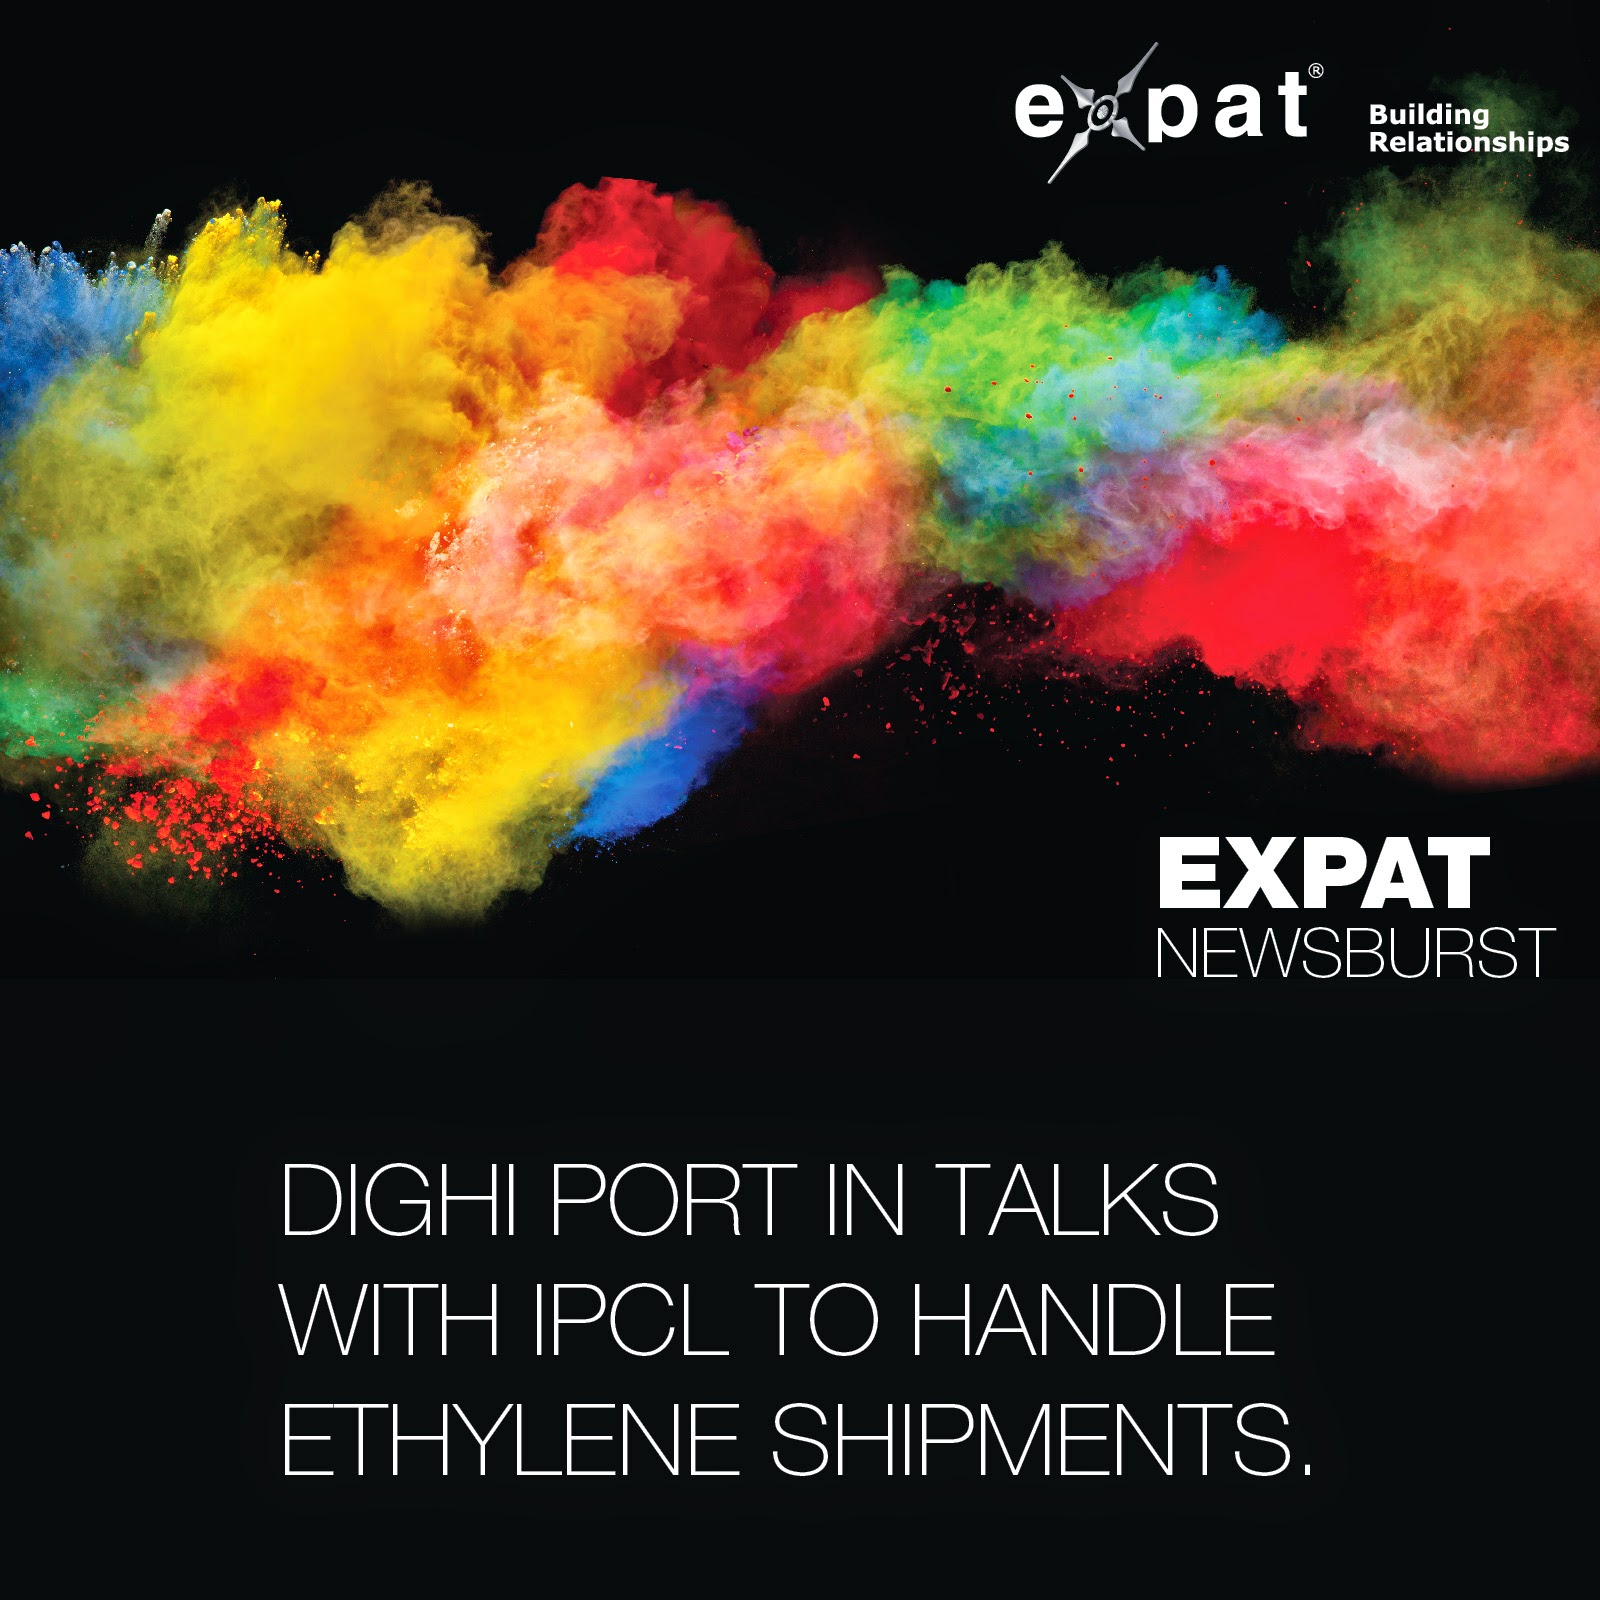 Expat NewsBurst: Dighi Port